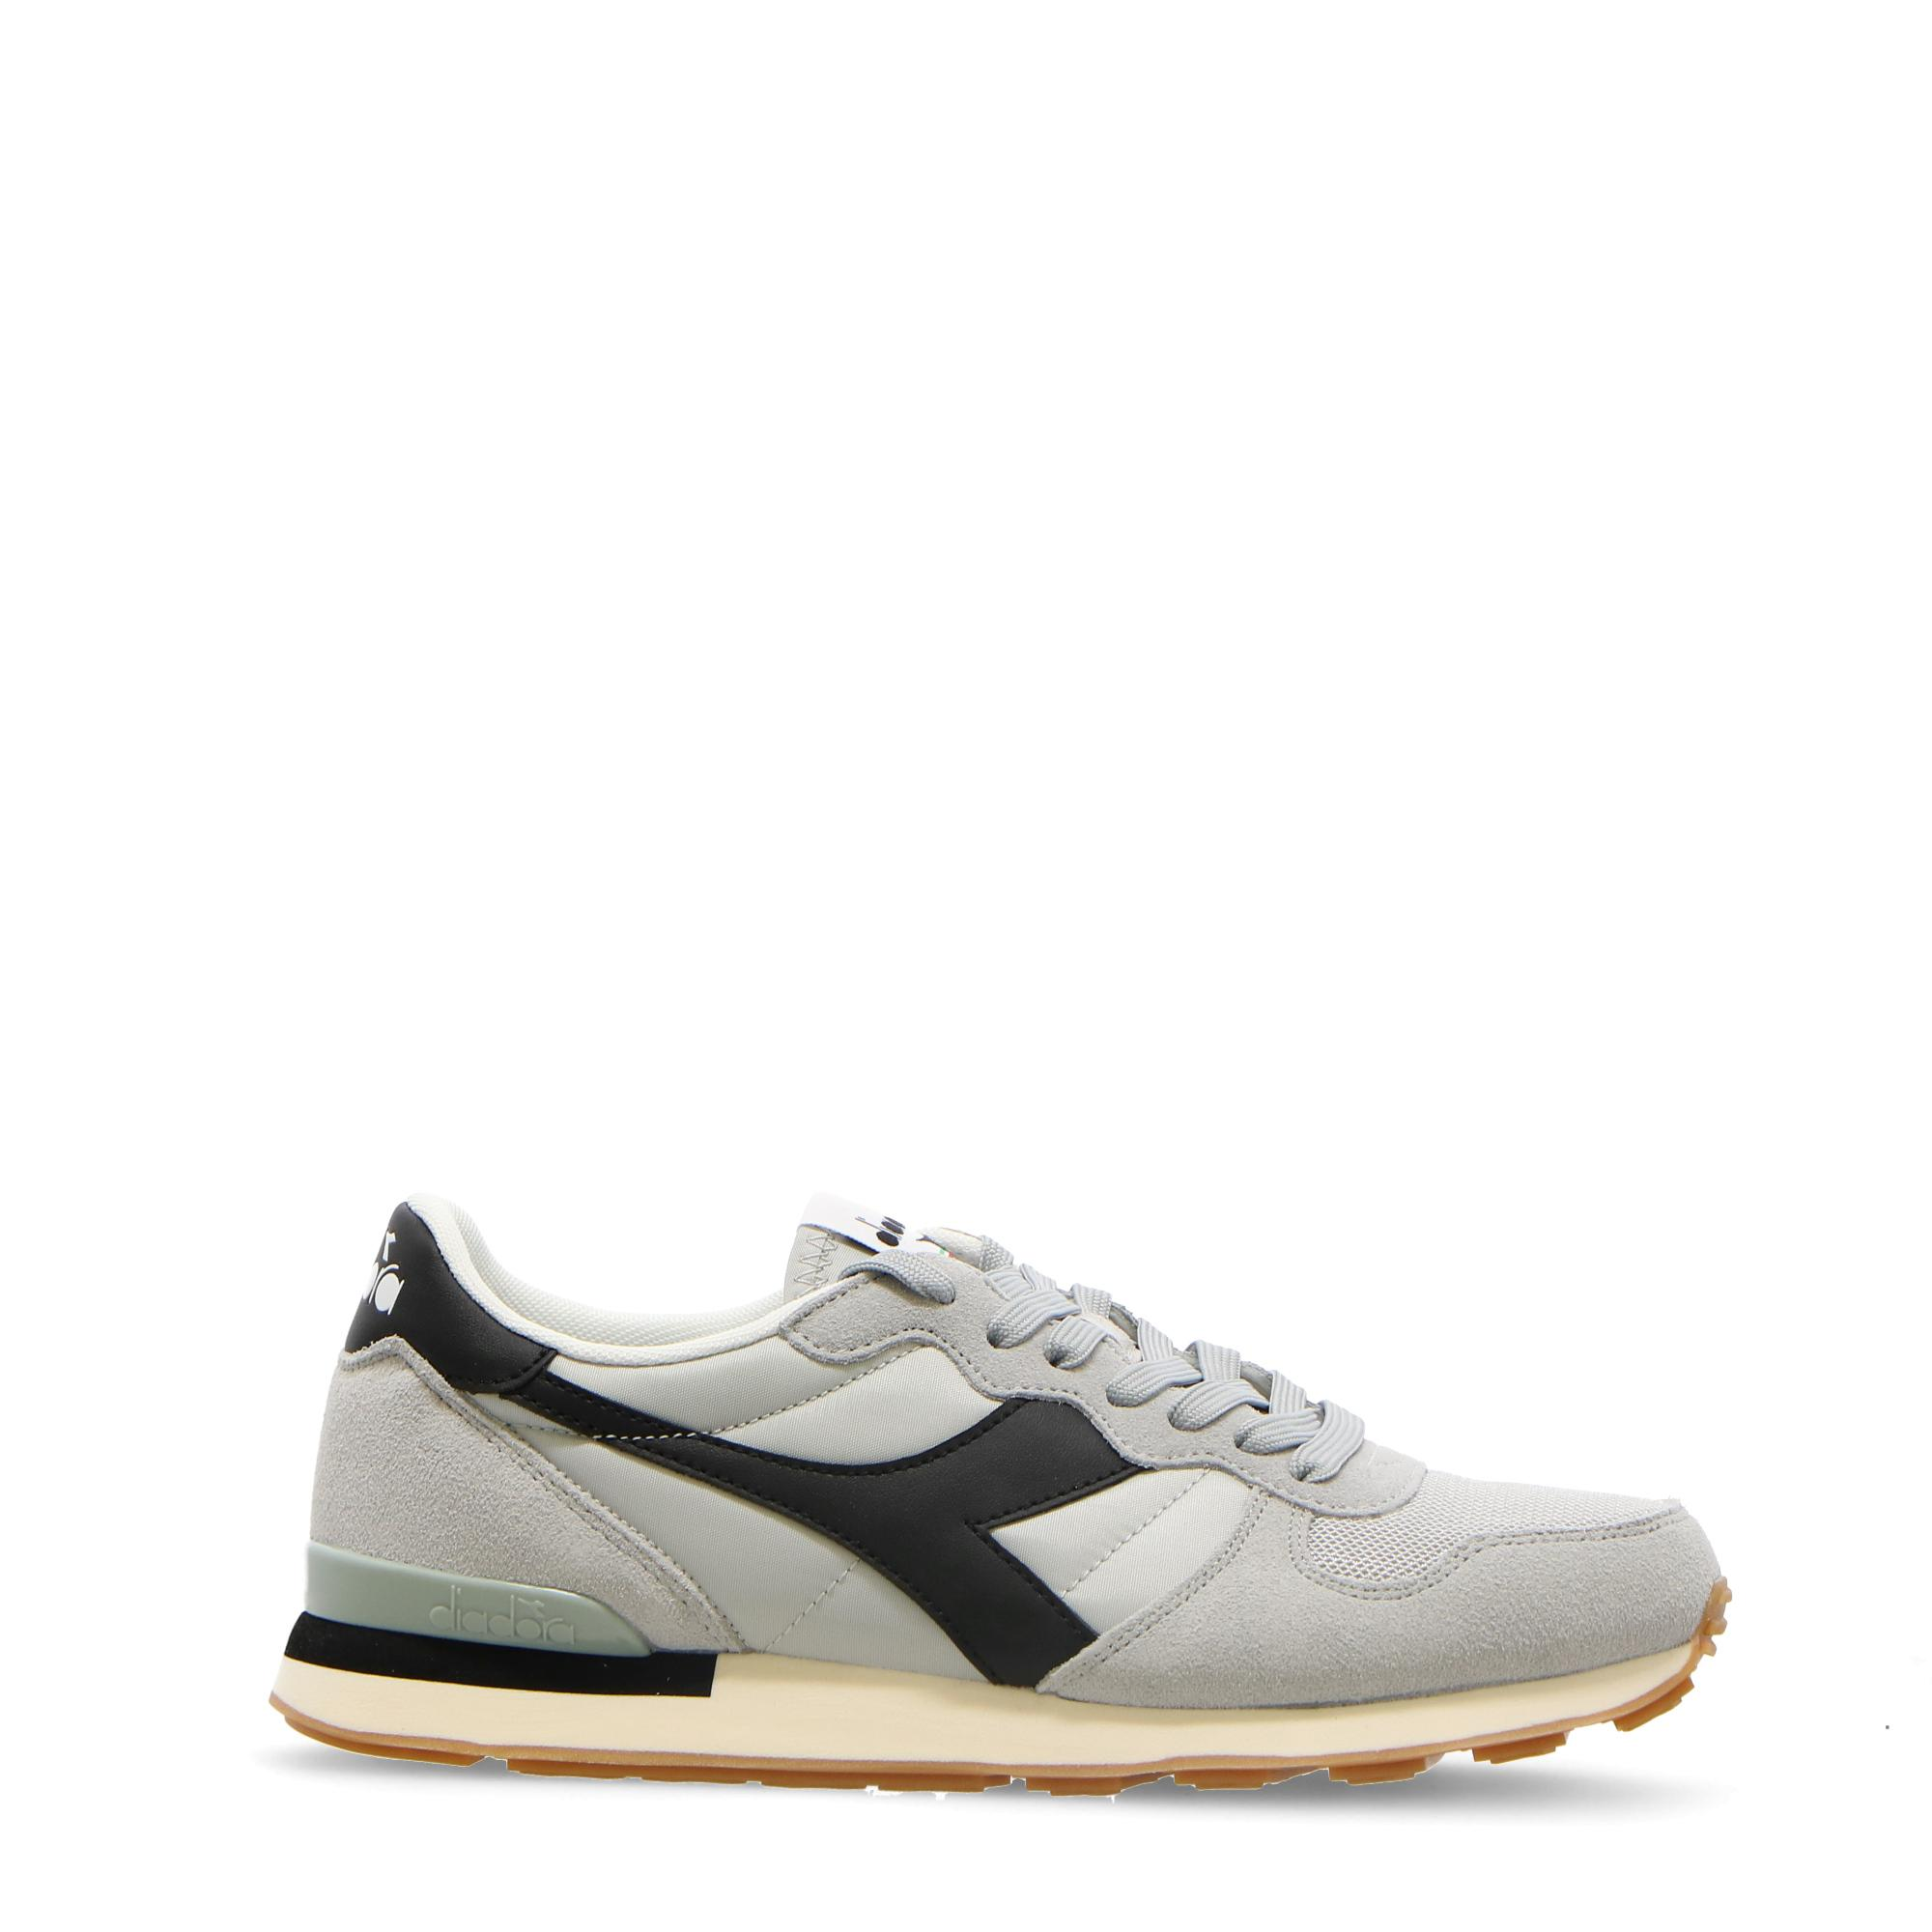 Diadora Camaro<br/> High rise glacier gray black